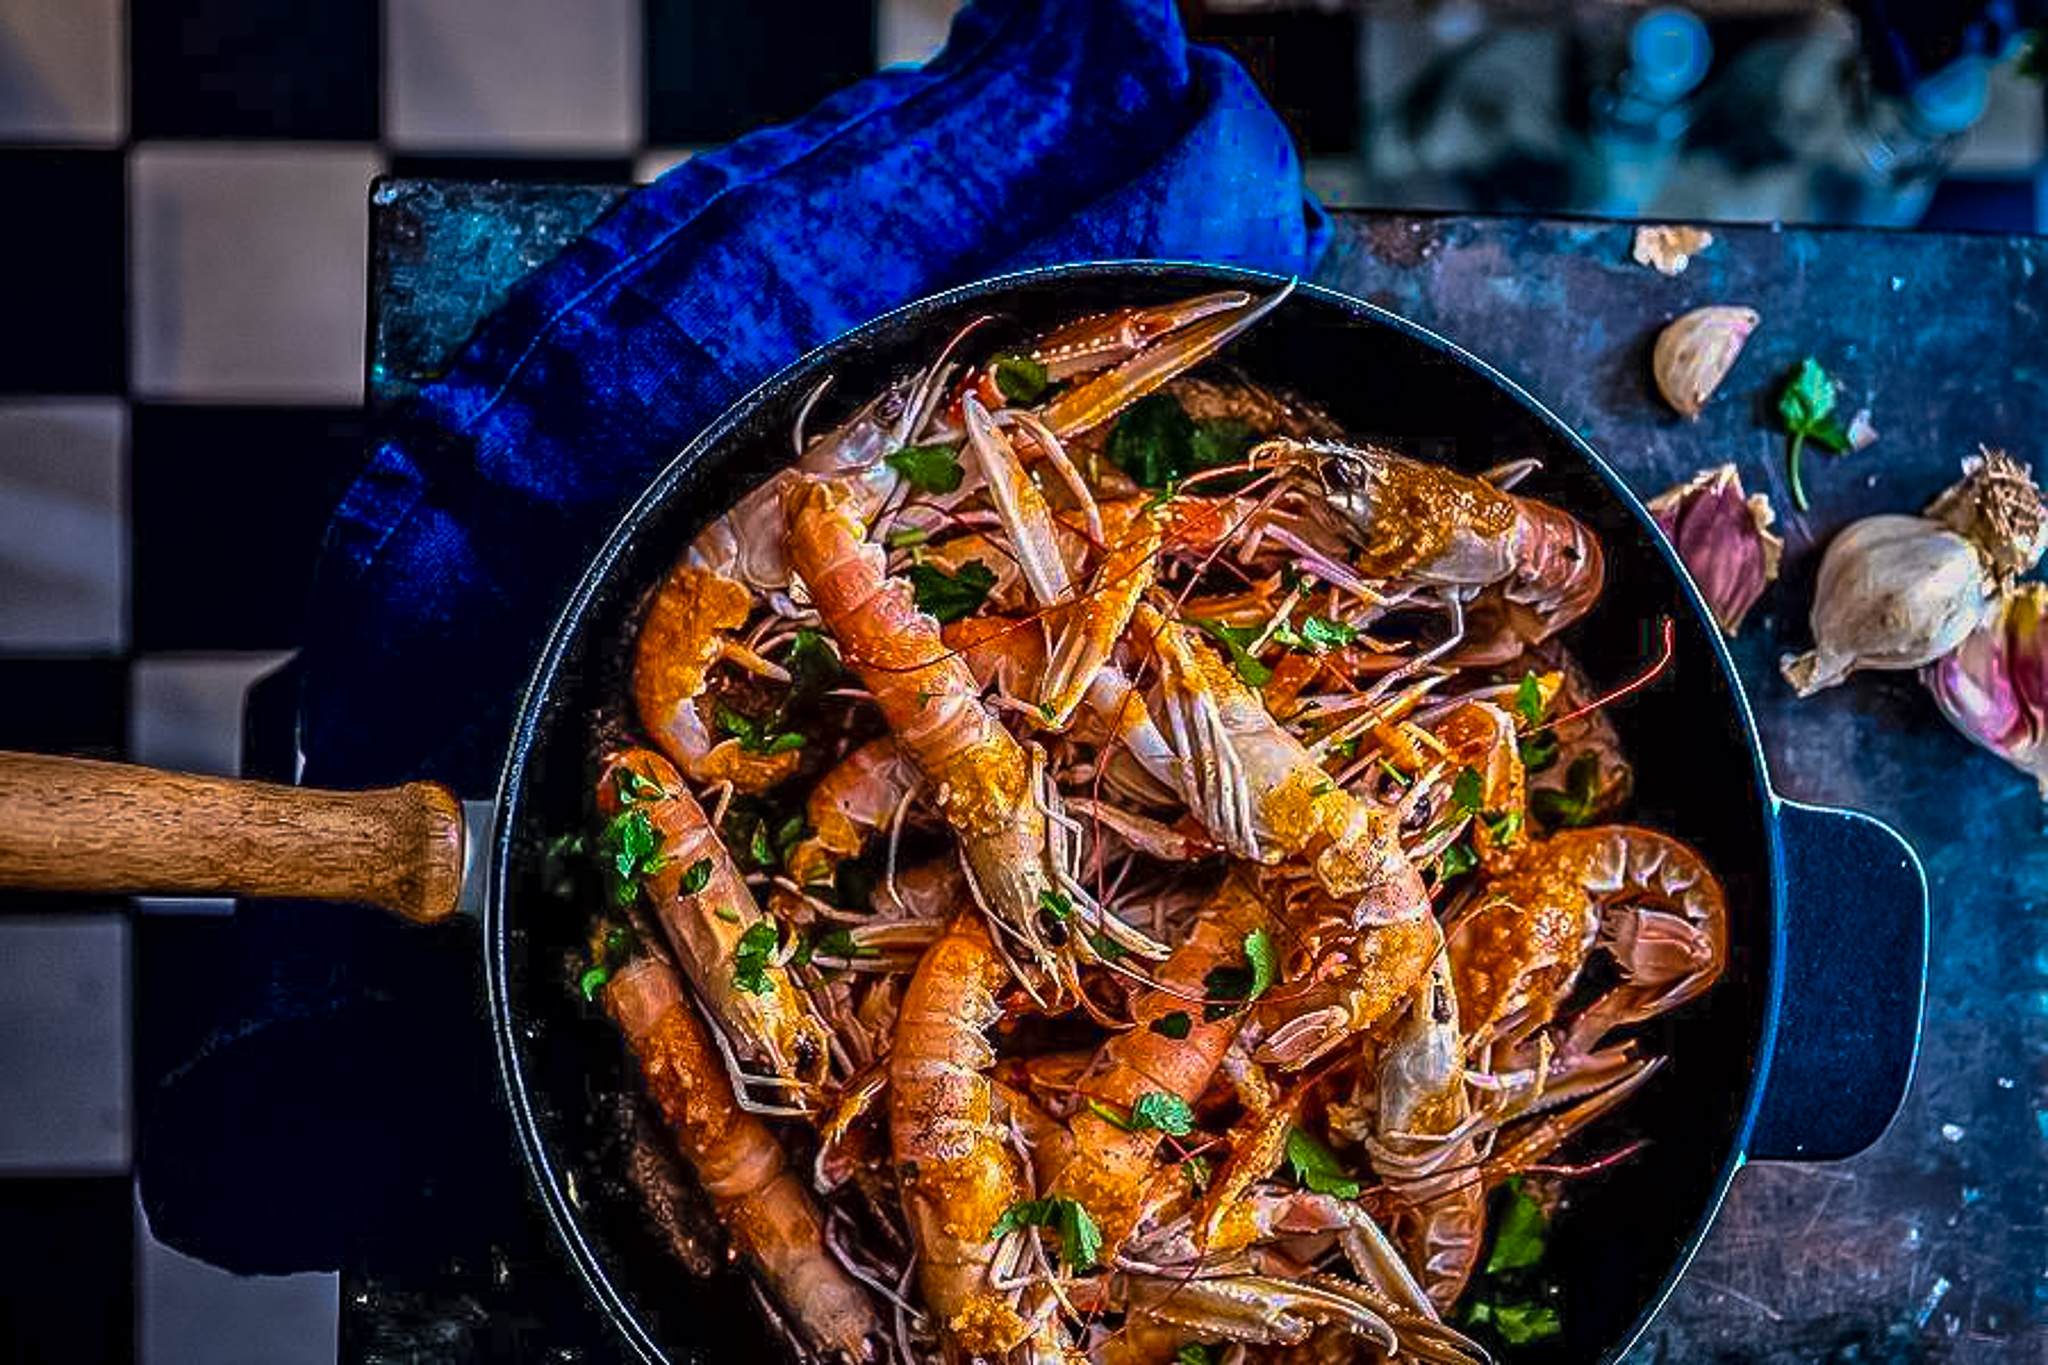 Croatian cuisine - shrimps